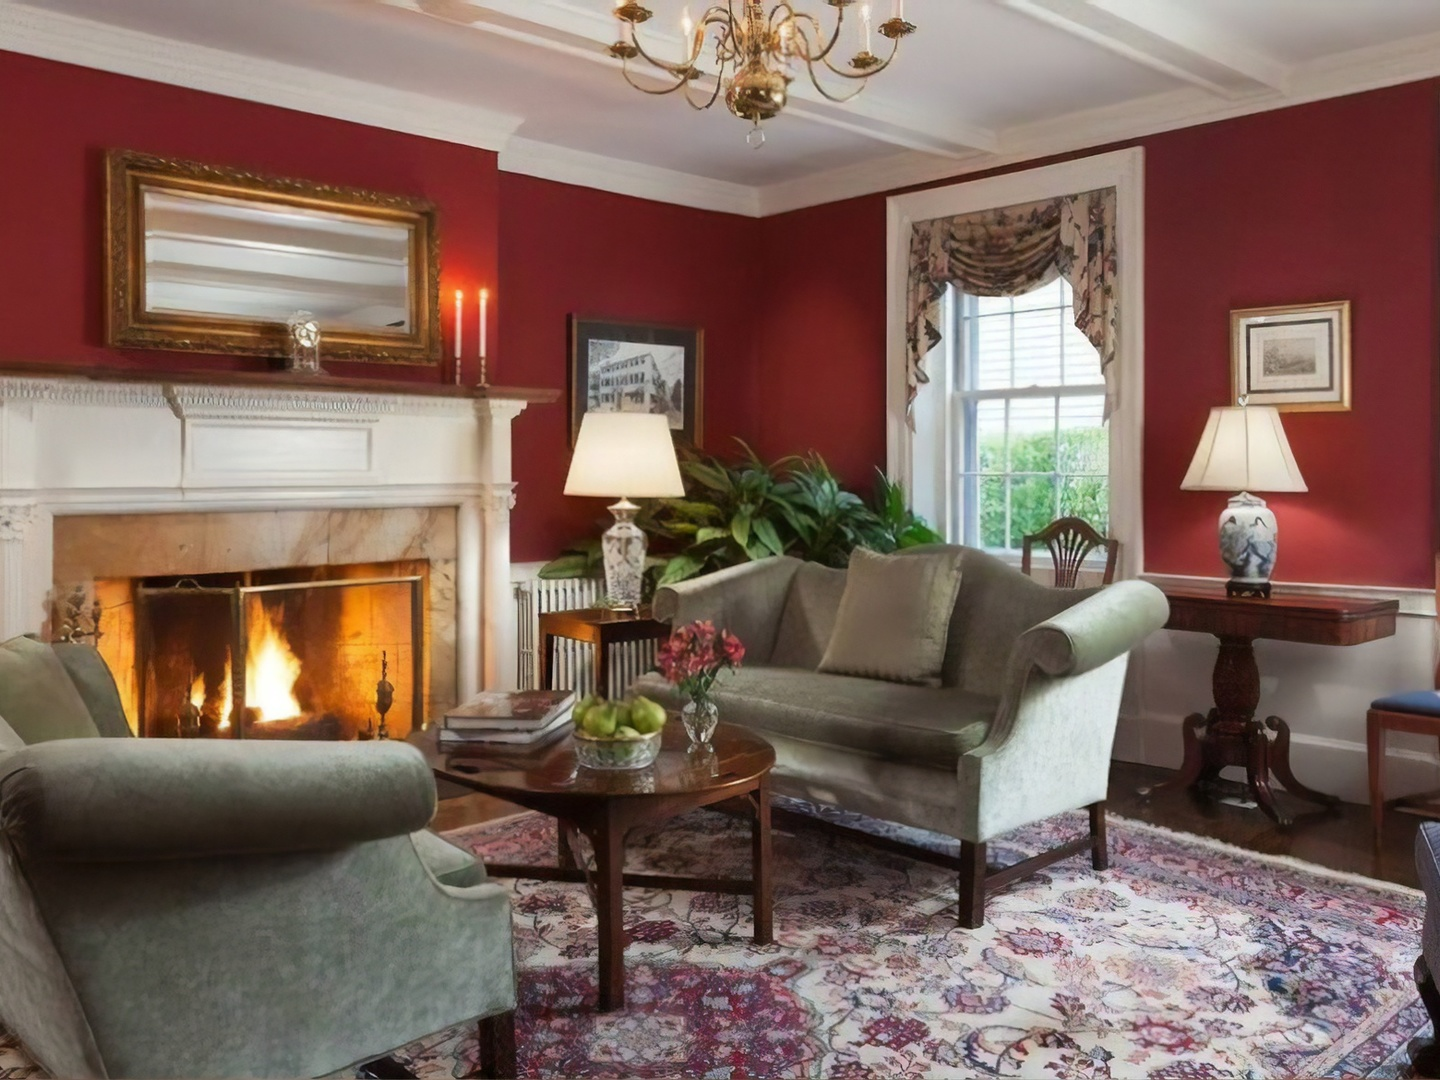 A living room filled with furniture and a fire place at Harbor Light Inn.